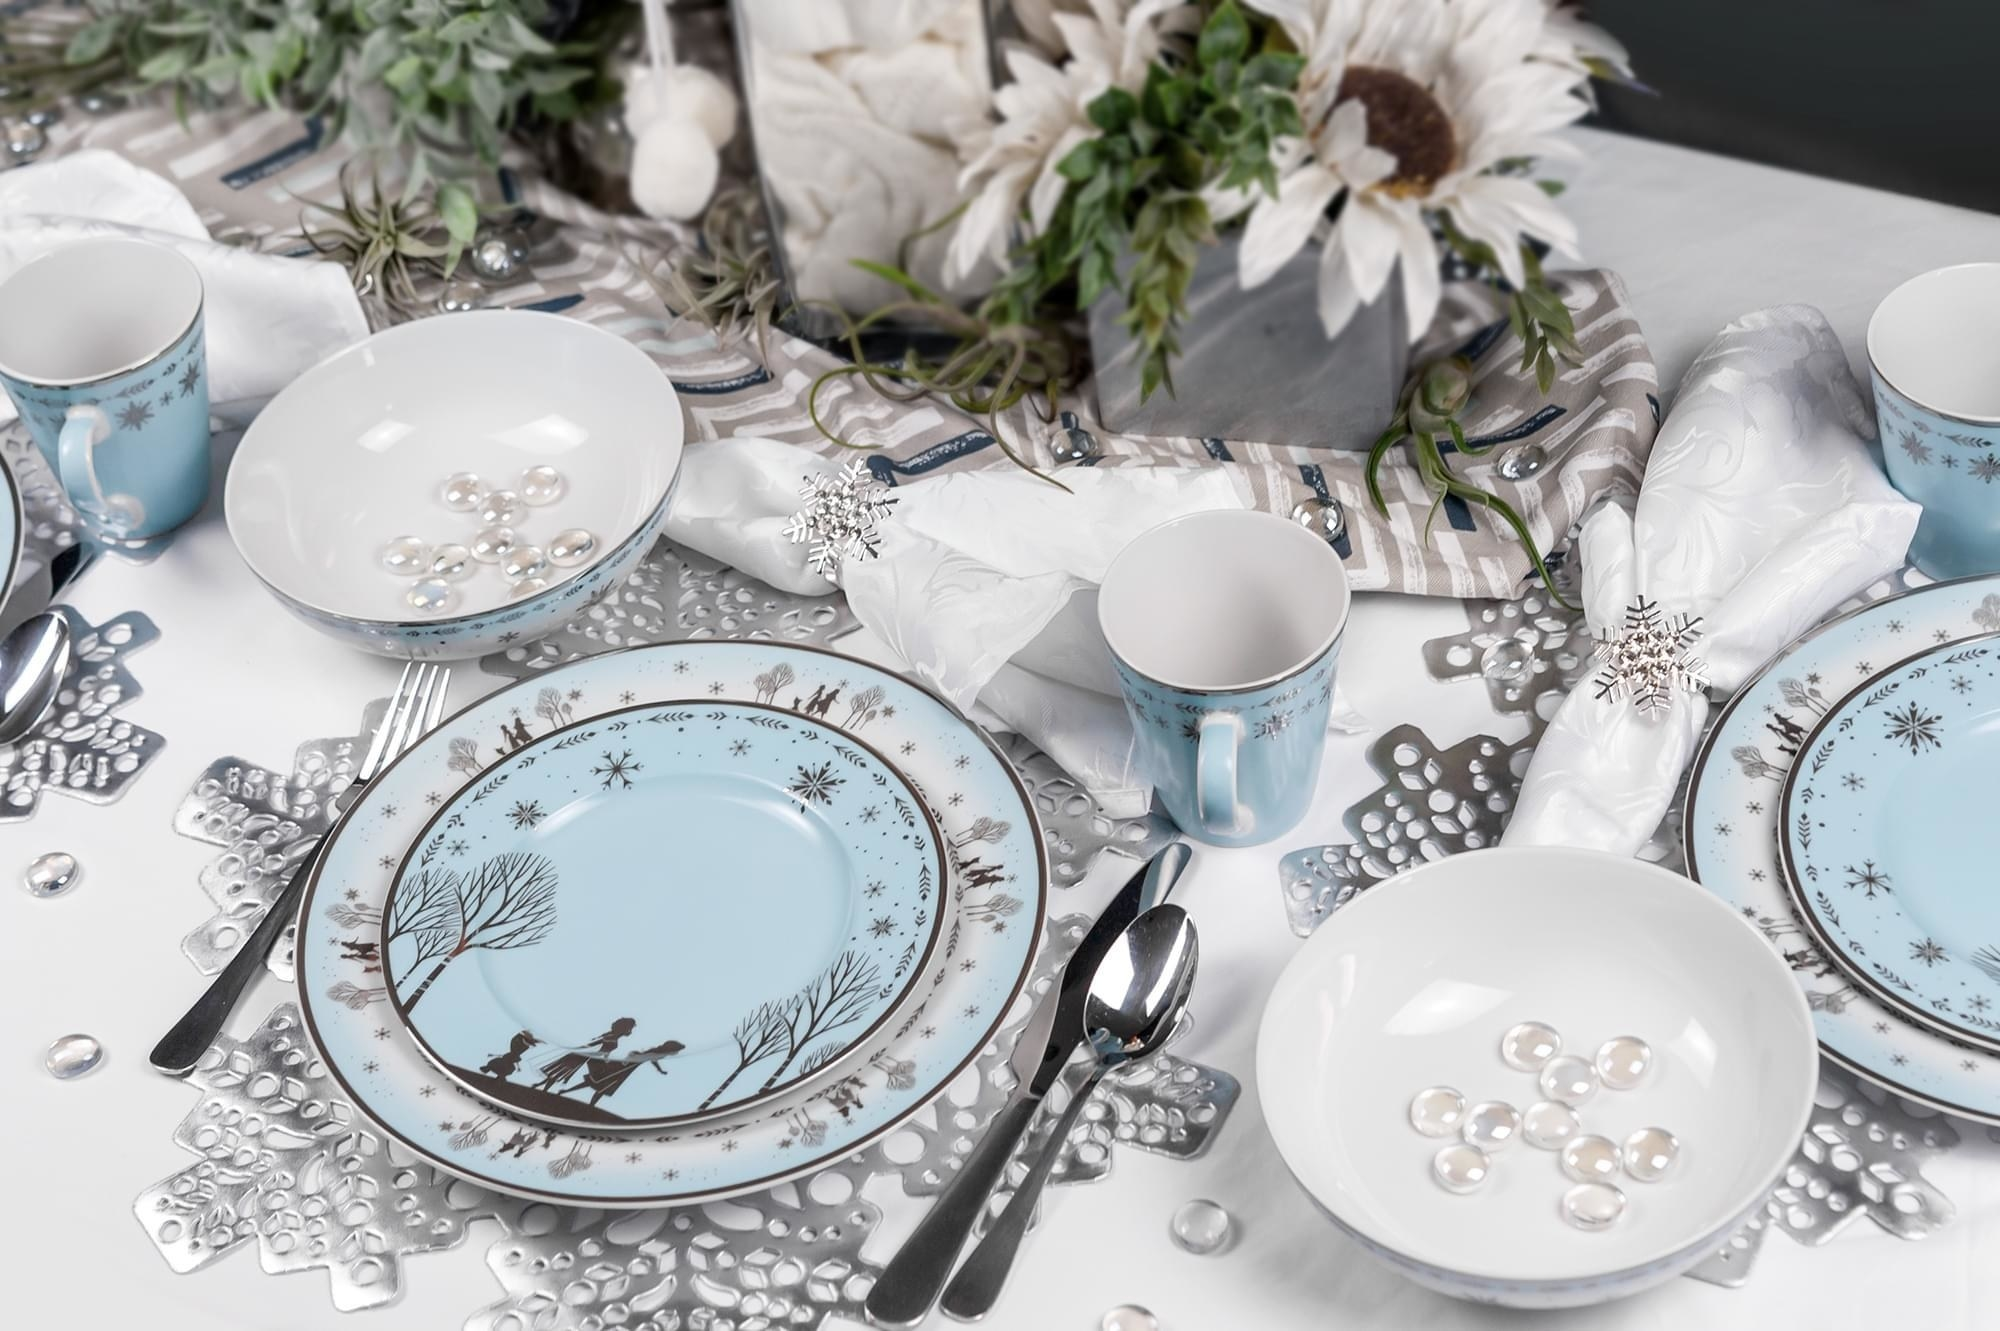 small blue plate with ana, elsa, and olaf on top of a light blue plate with the same design repeated on the edge